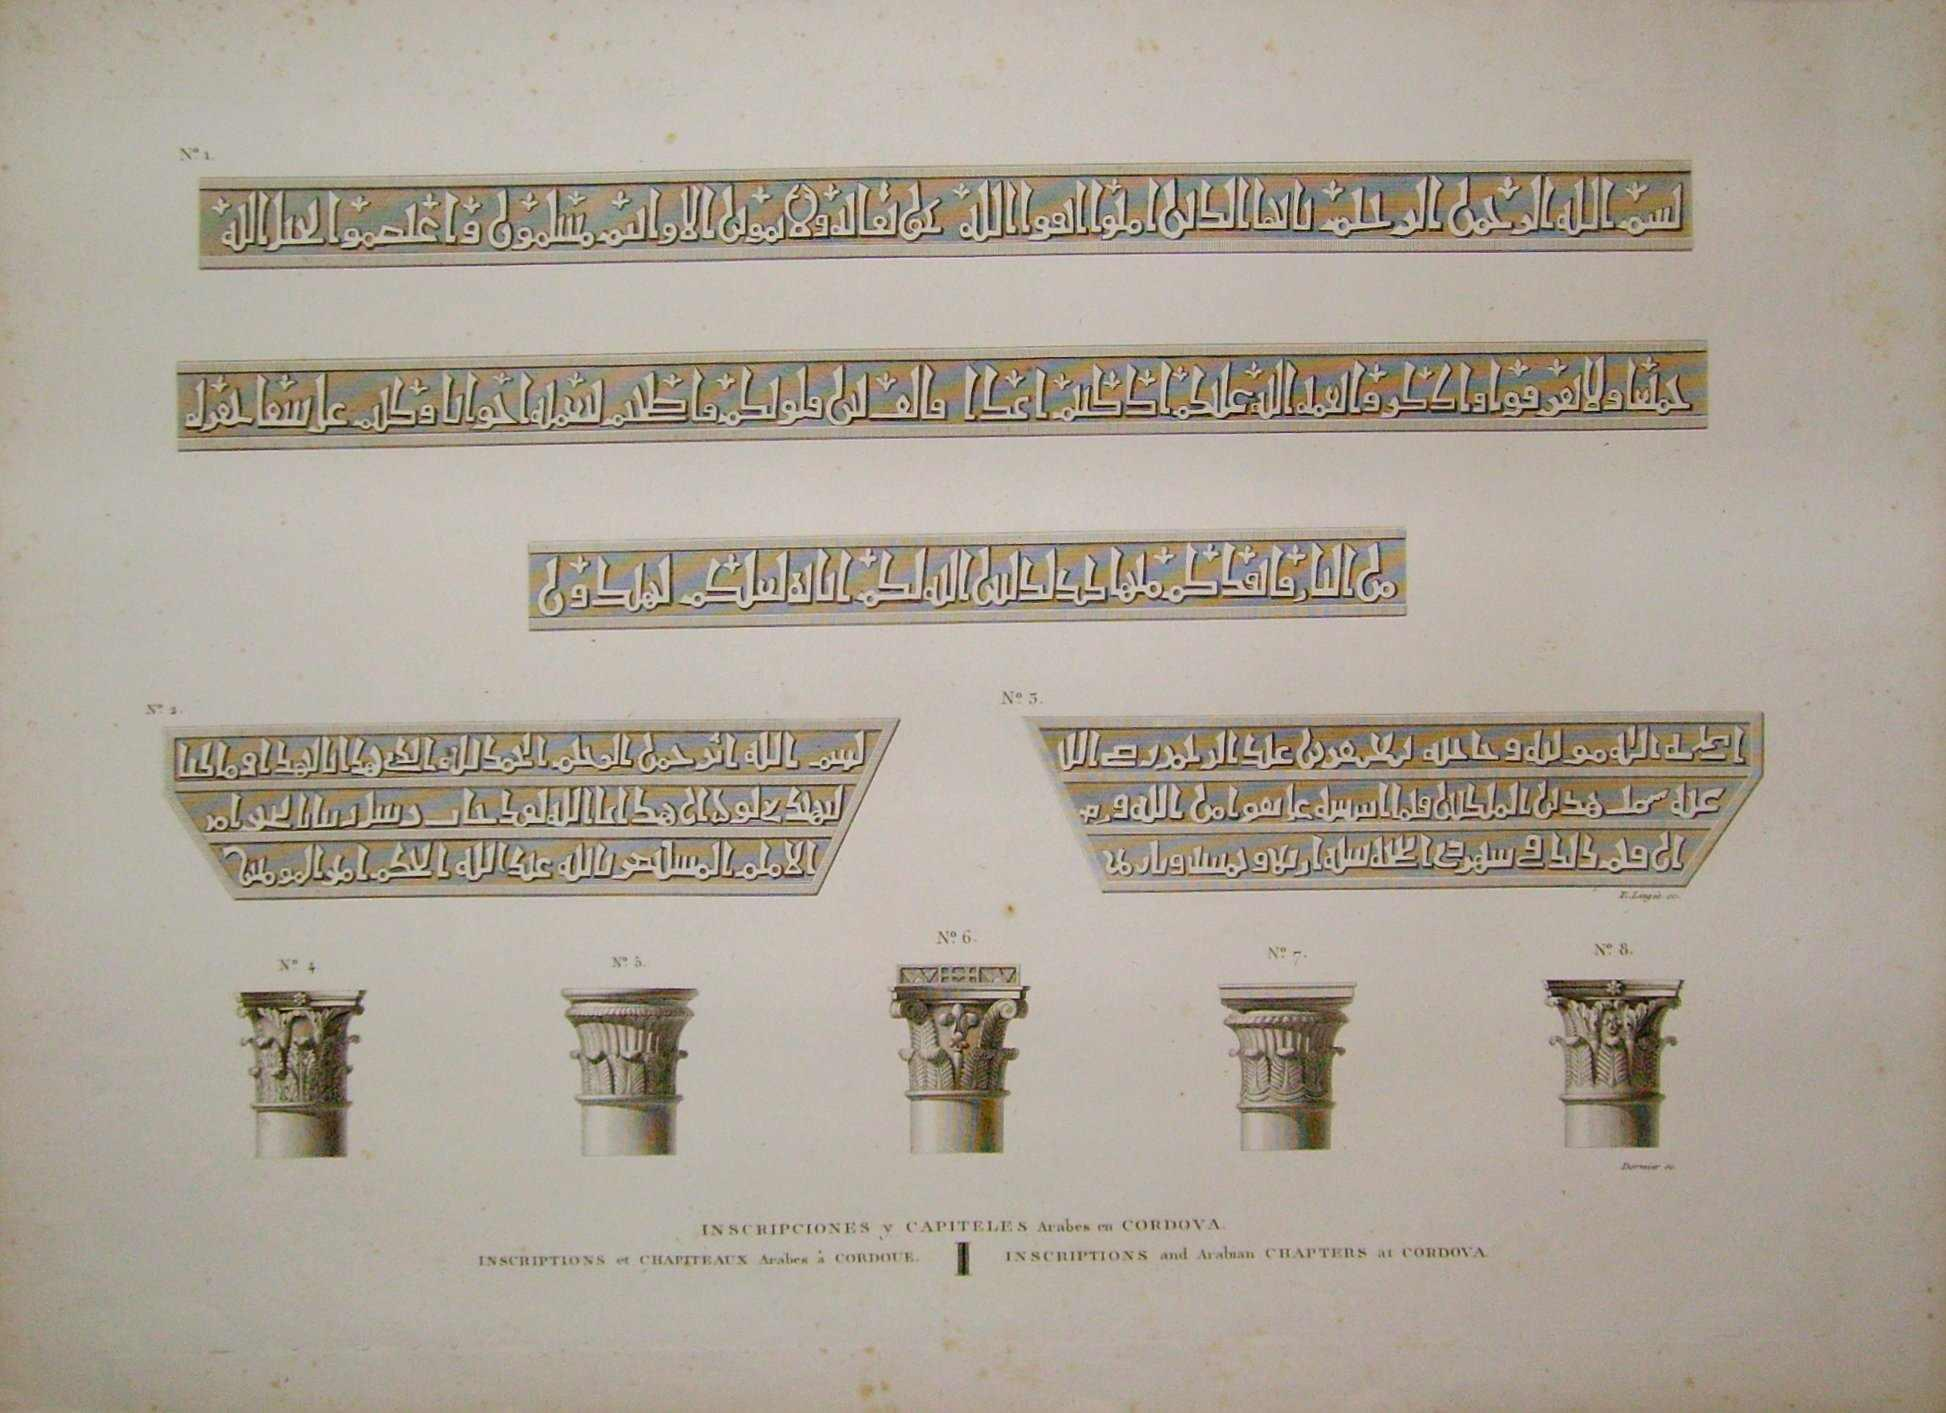 INSCRIPCIONES Y CAPITELES ÁRABES EN CORDOVA - INSCRIPTIONS ET CHAPITEAUX ARABES À CORDOUE - INSCRIPTIONS AND ARABIAN CHAPTERS AT CORDOVA ( CÓRDOBA )